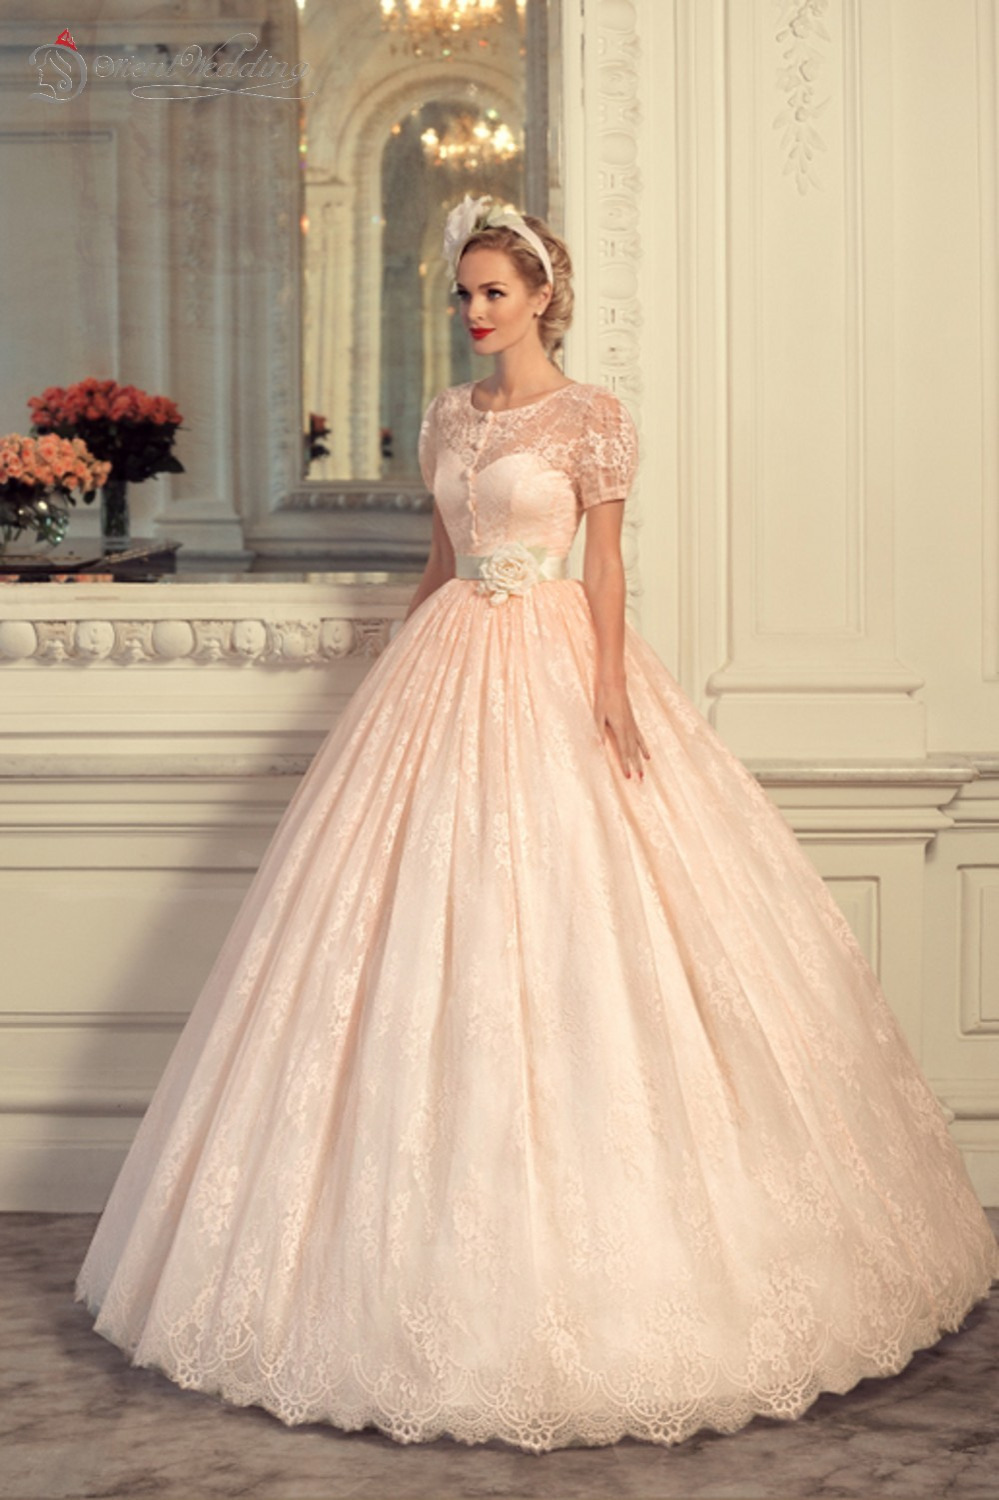 Blush pink wedding dresses vintage wedding dress 2015 vestido de blush pink wedding dresses vintage wedding dress 2015 vestido de novia fotos reales peach wedding dresses with short sleeves in wedding dresses from junglespirit Image collections